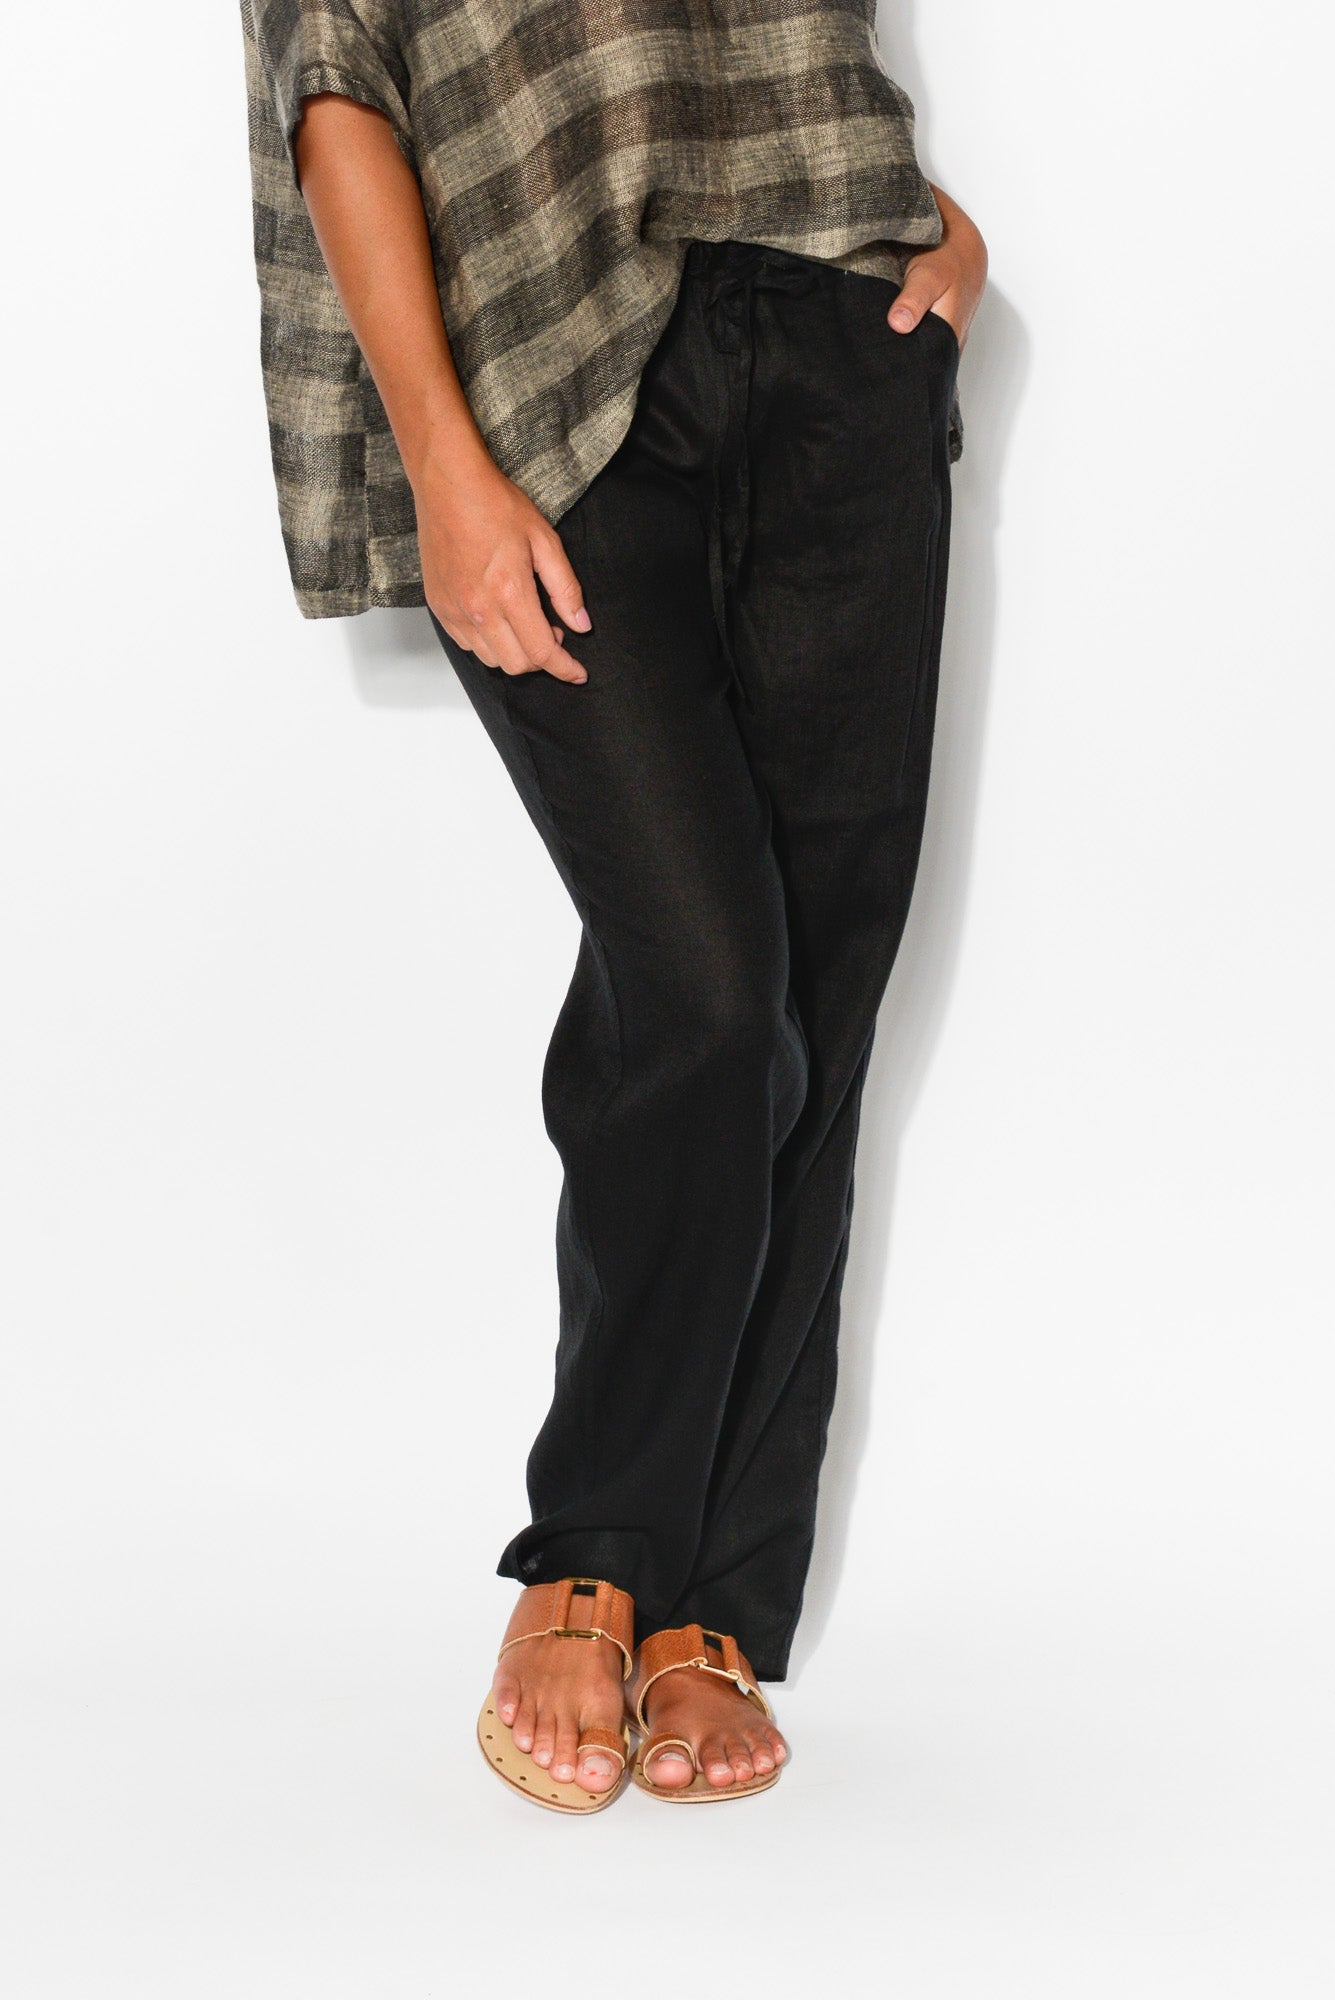 Rue Black Linen Pant - Blue Bungalow